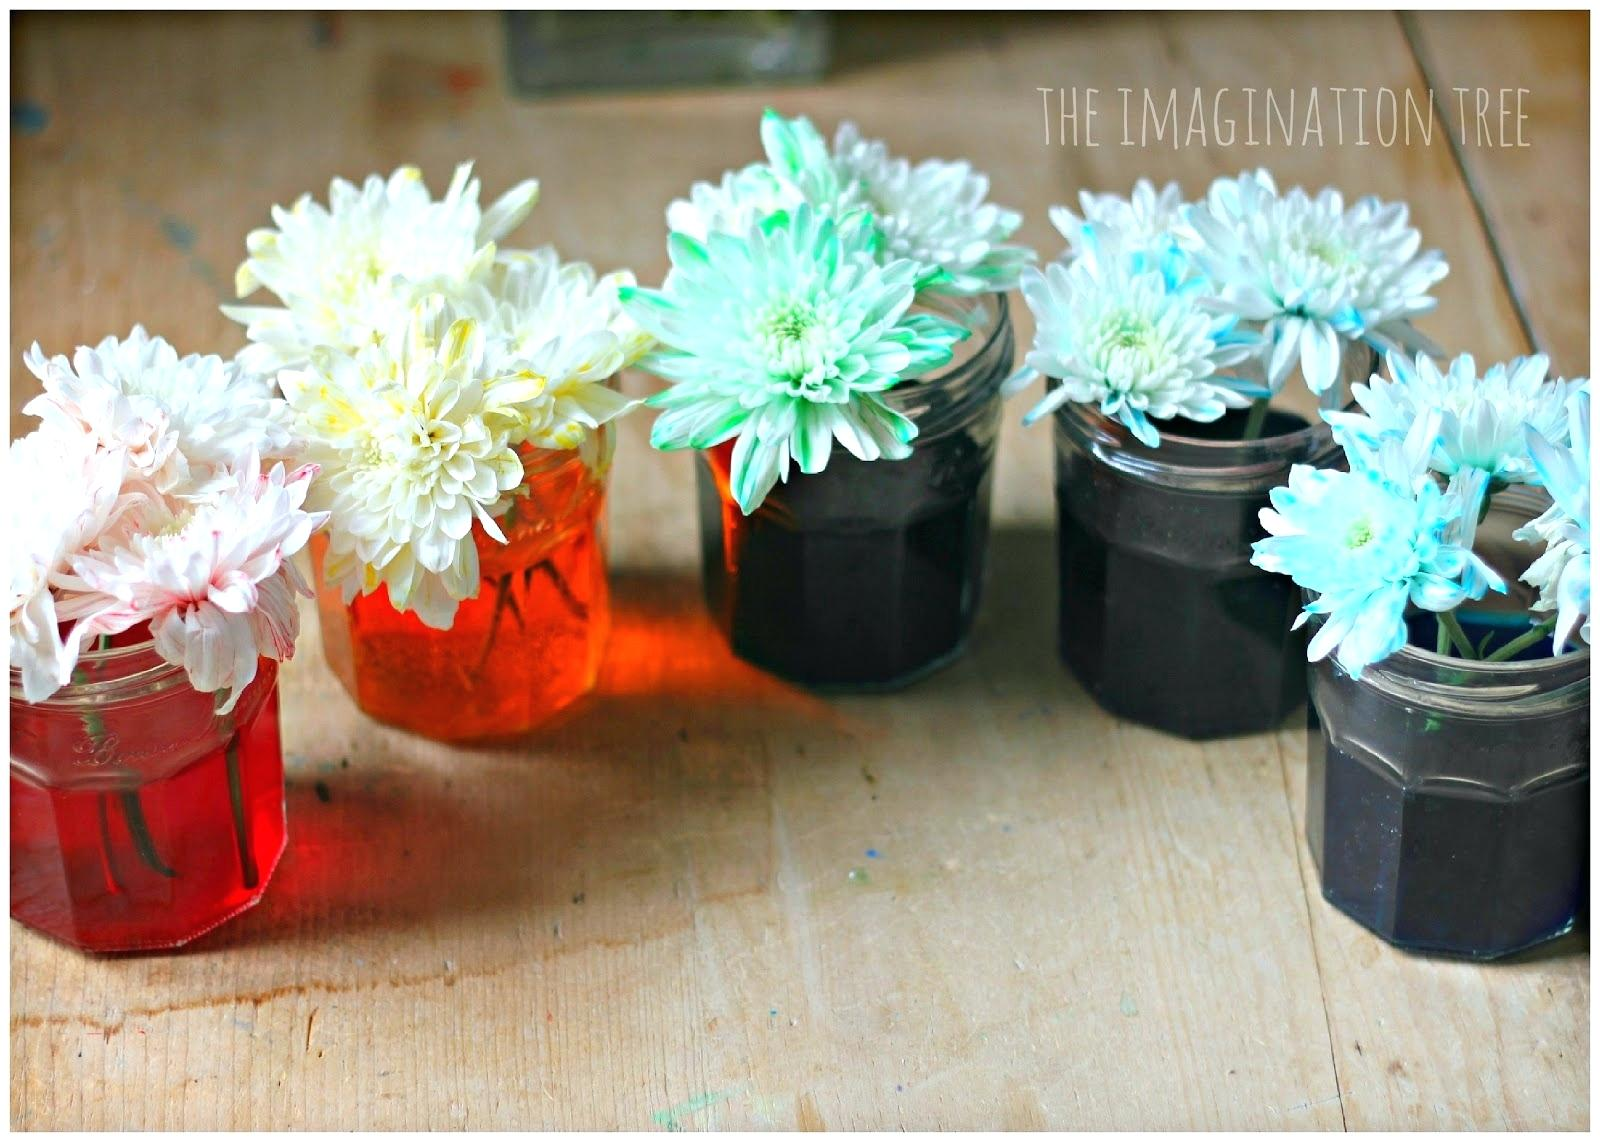 How To Dye Flowers With Food Coloring How To Dye Flowers With Food